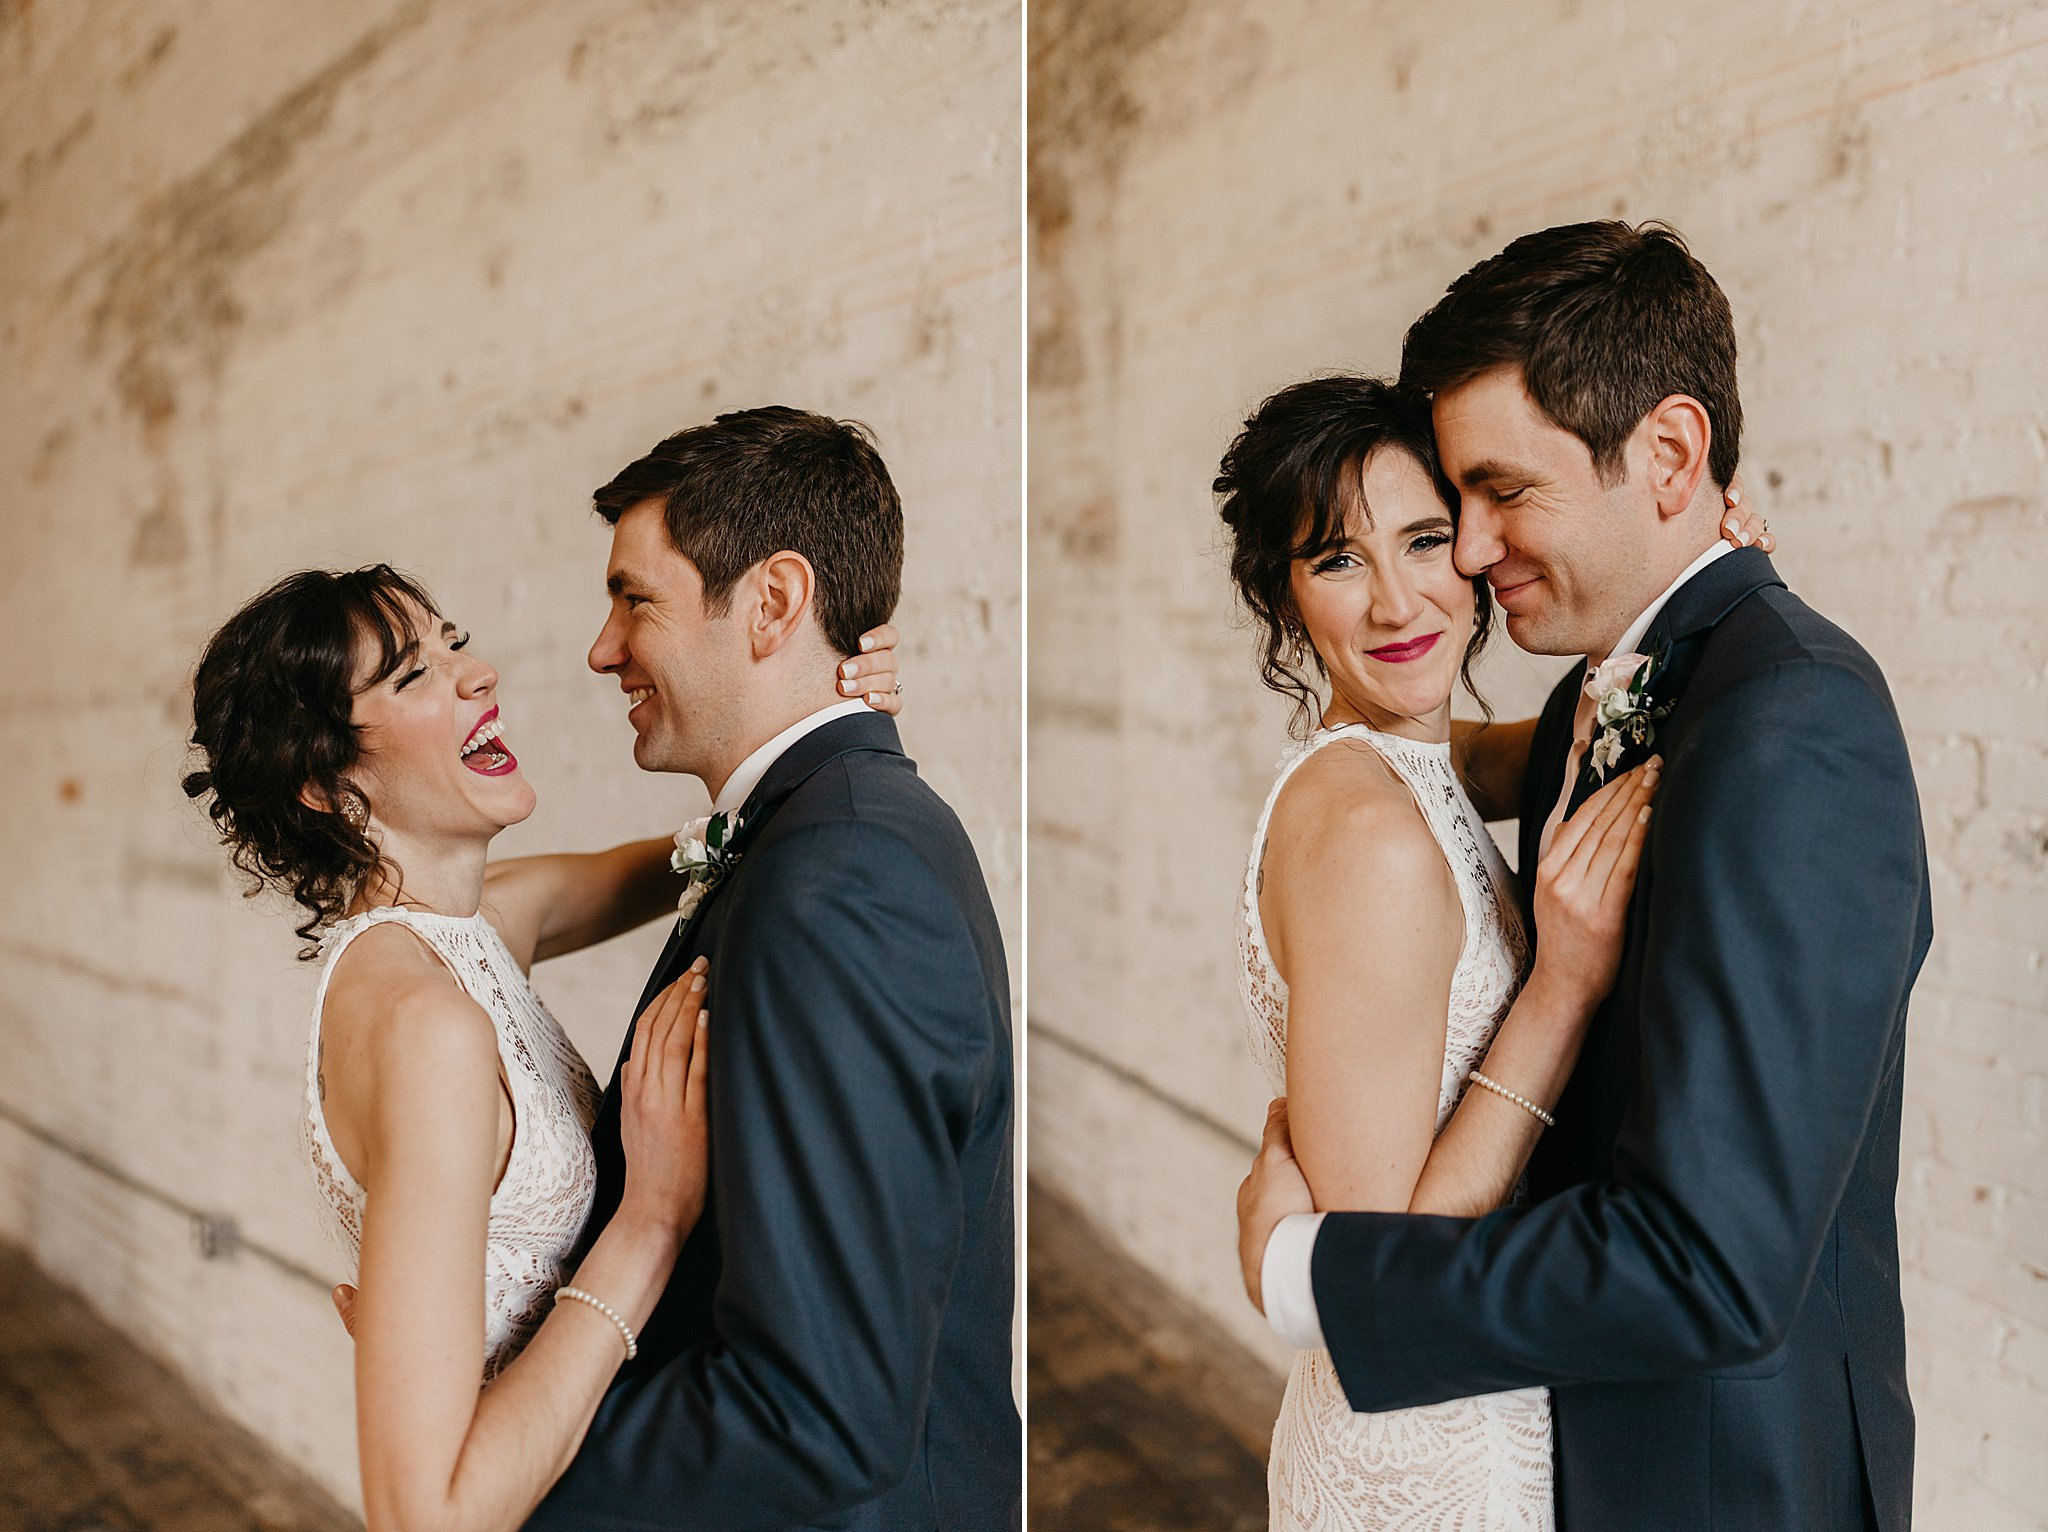 Wilderlove Co_Wedding Photographer_Industrial Wedding_Jewish Wedding_Dallas Texas Wedding_Brake & Clutch Warehouse_North Texas Photographer_0031.jpg